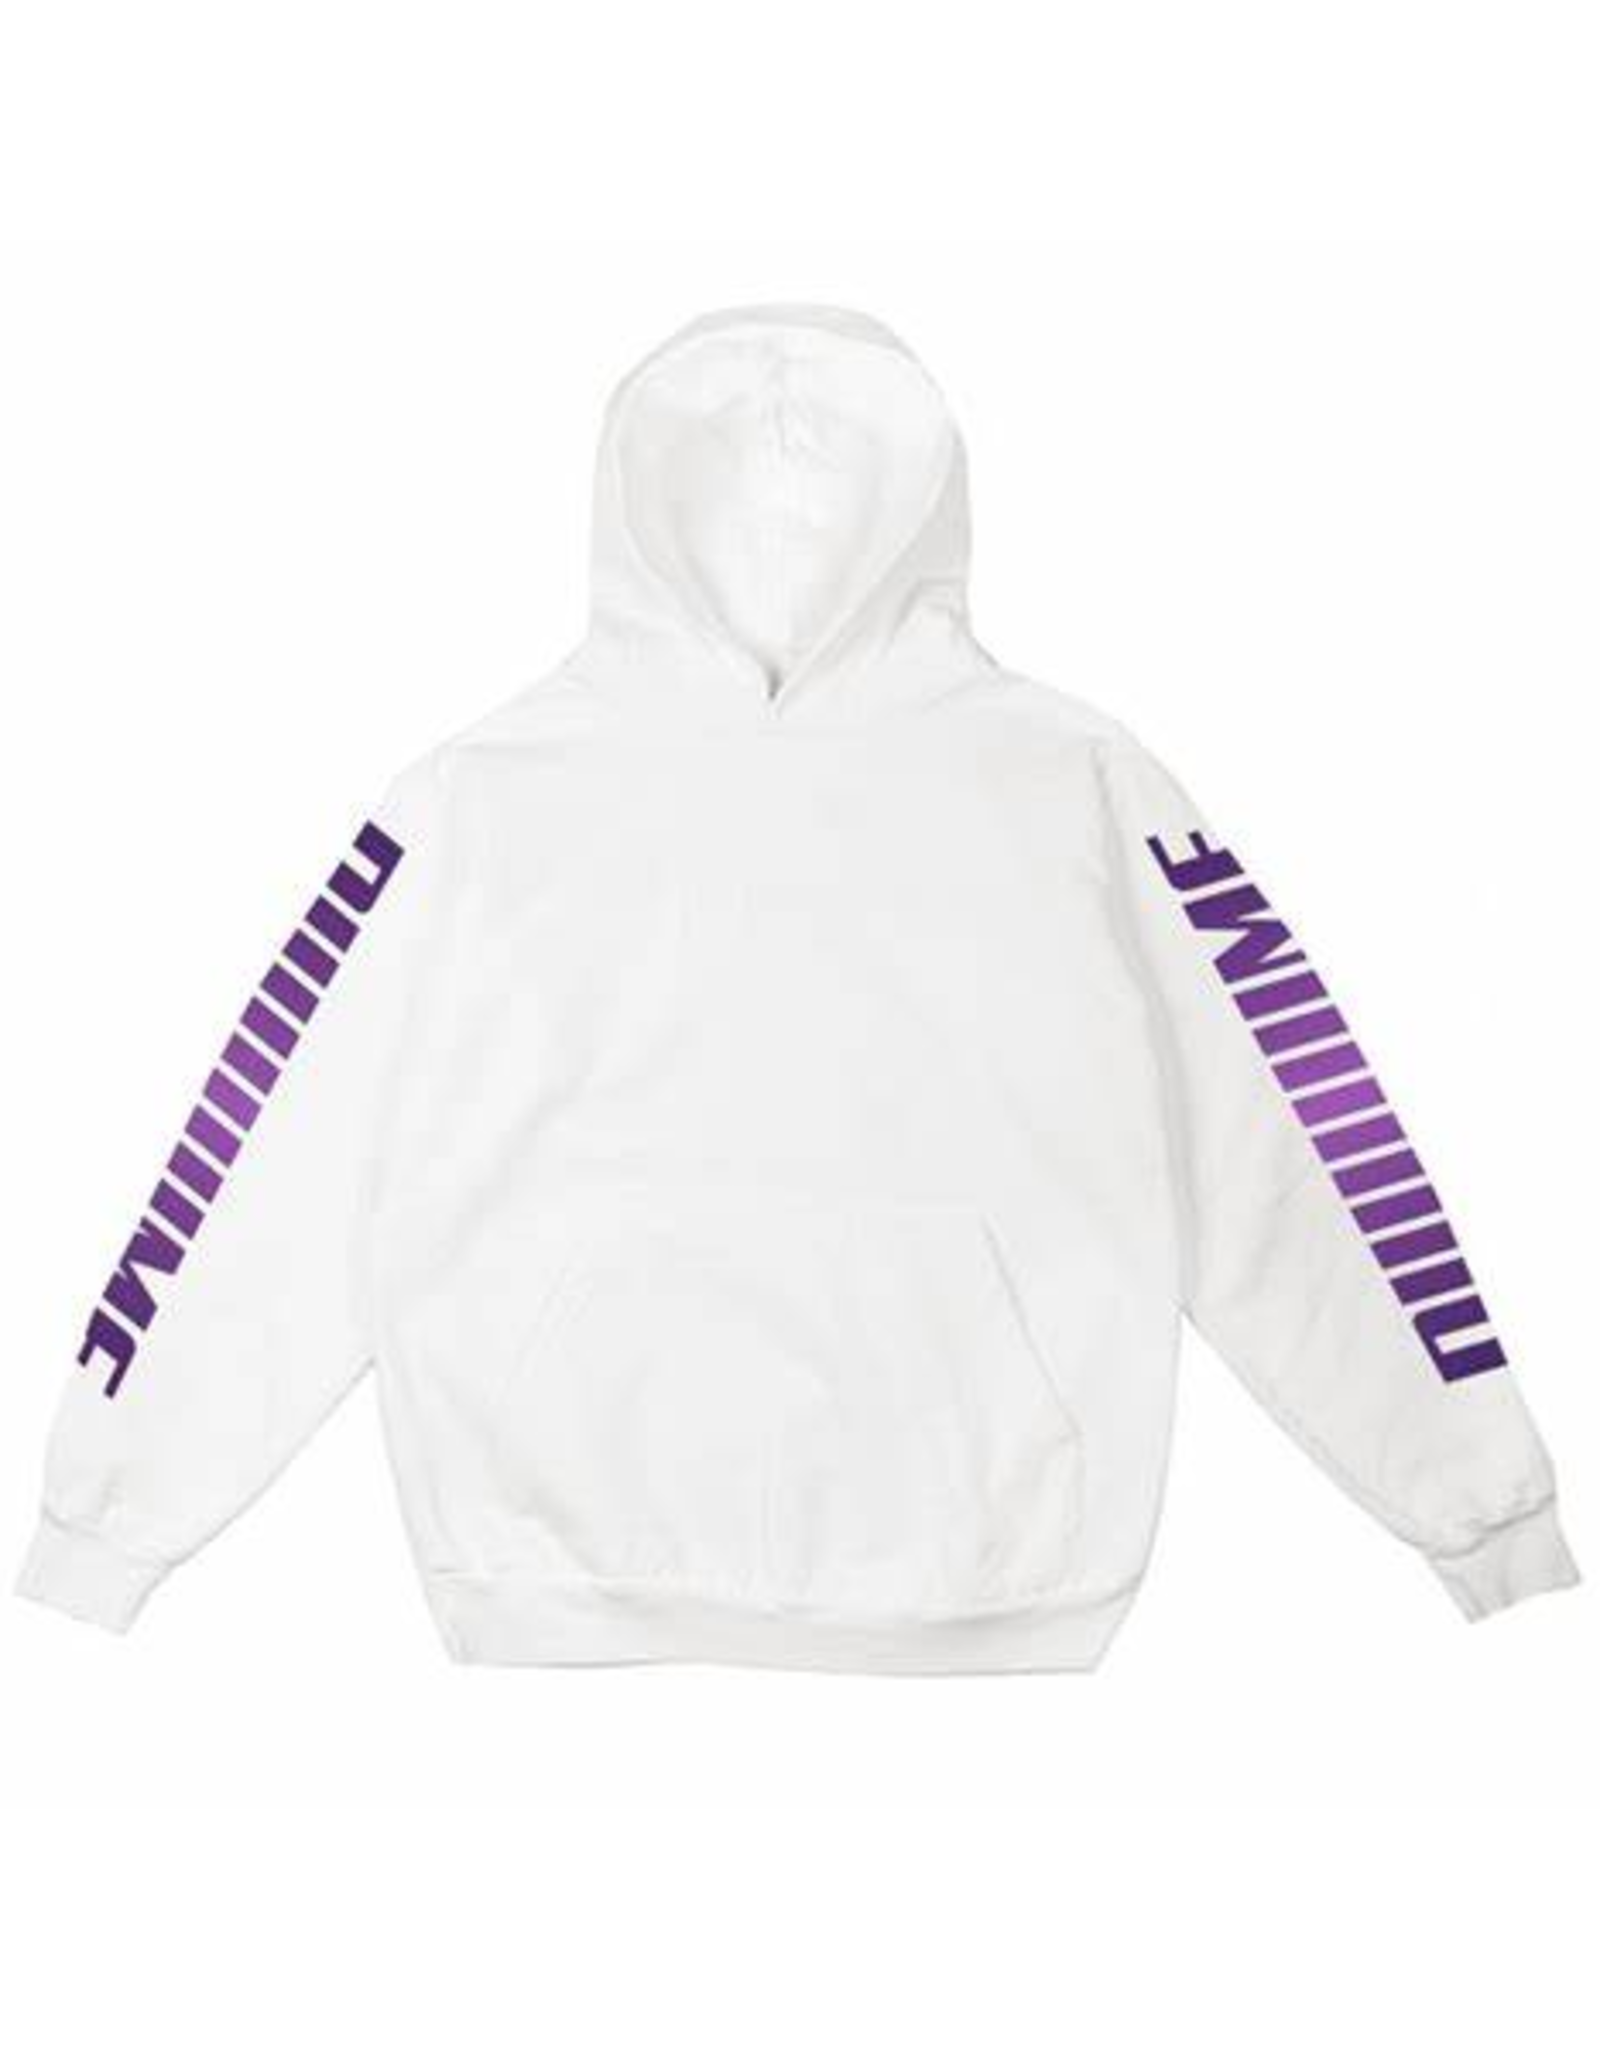 Dime Screaming hoodie - White